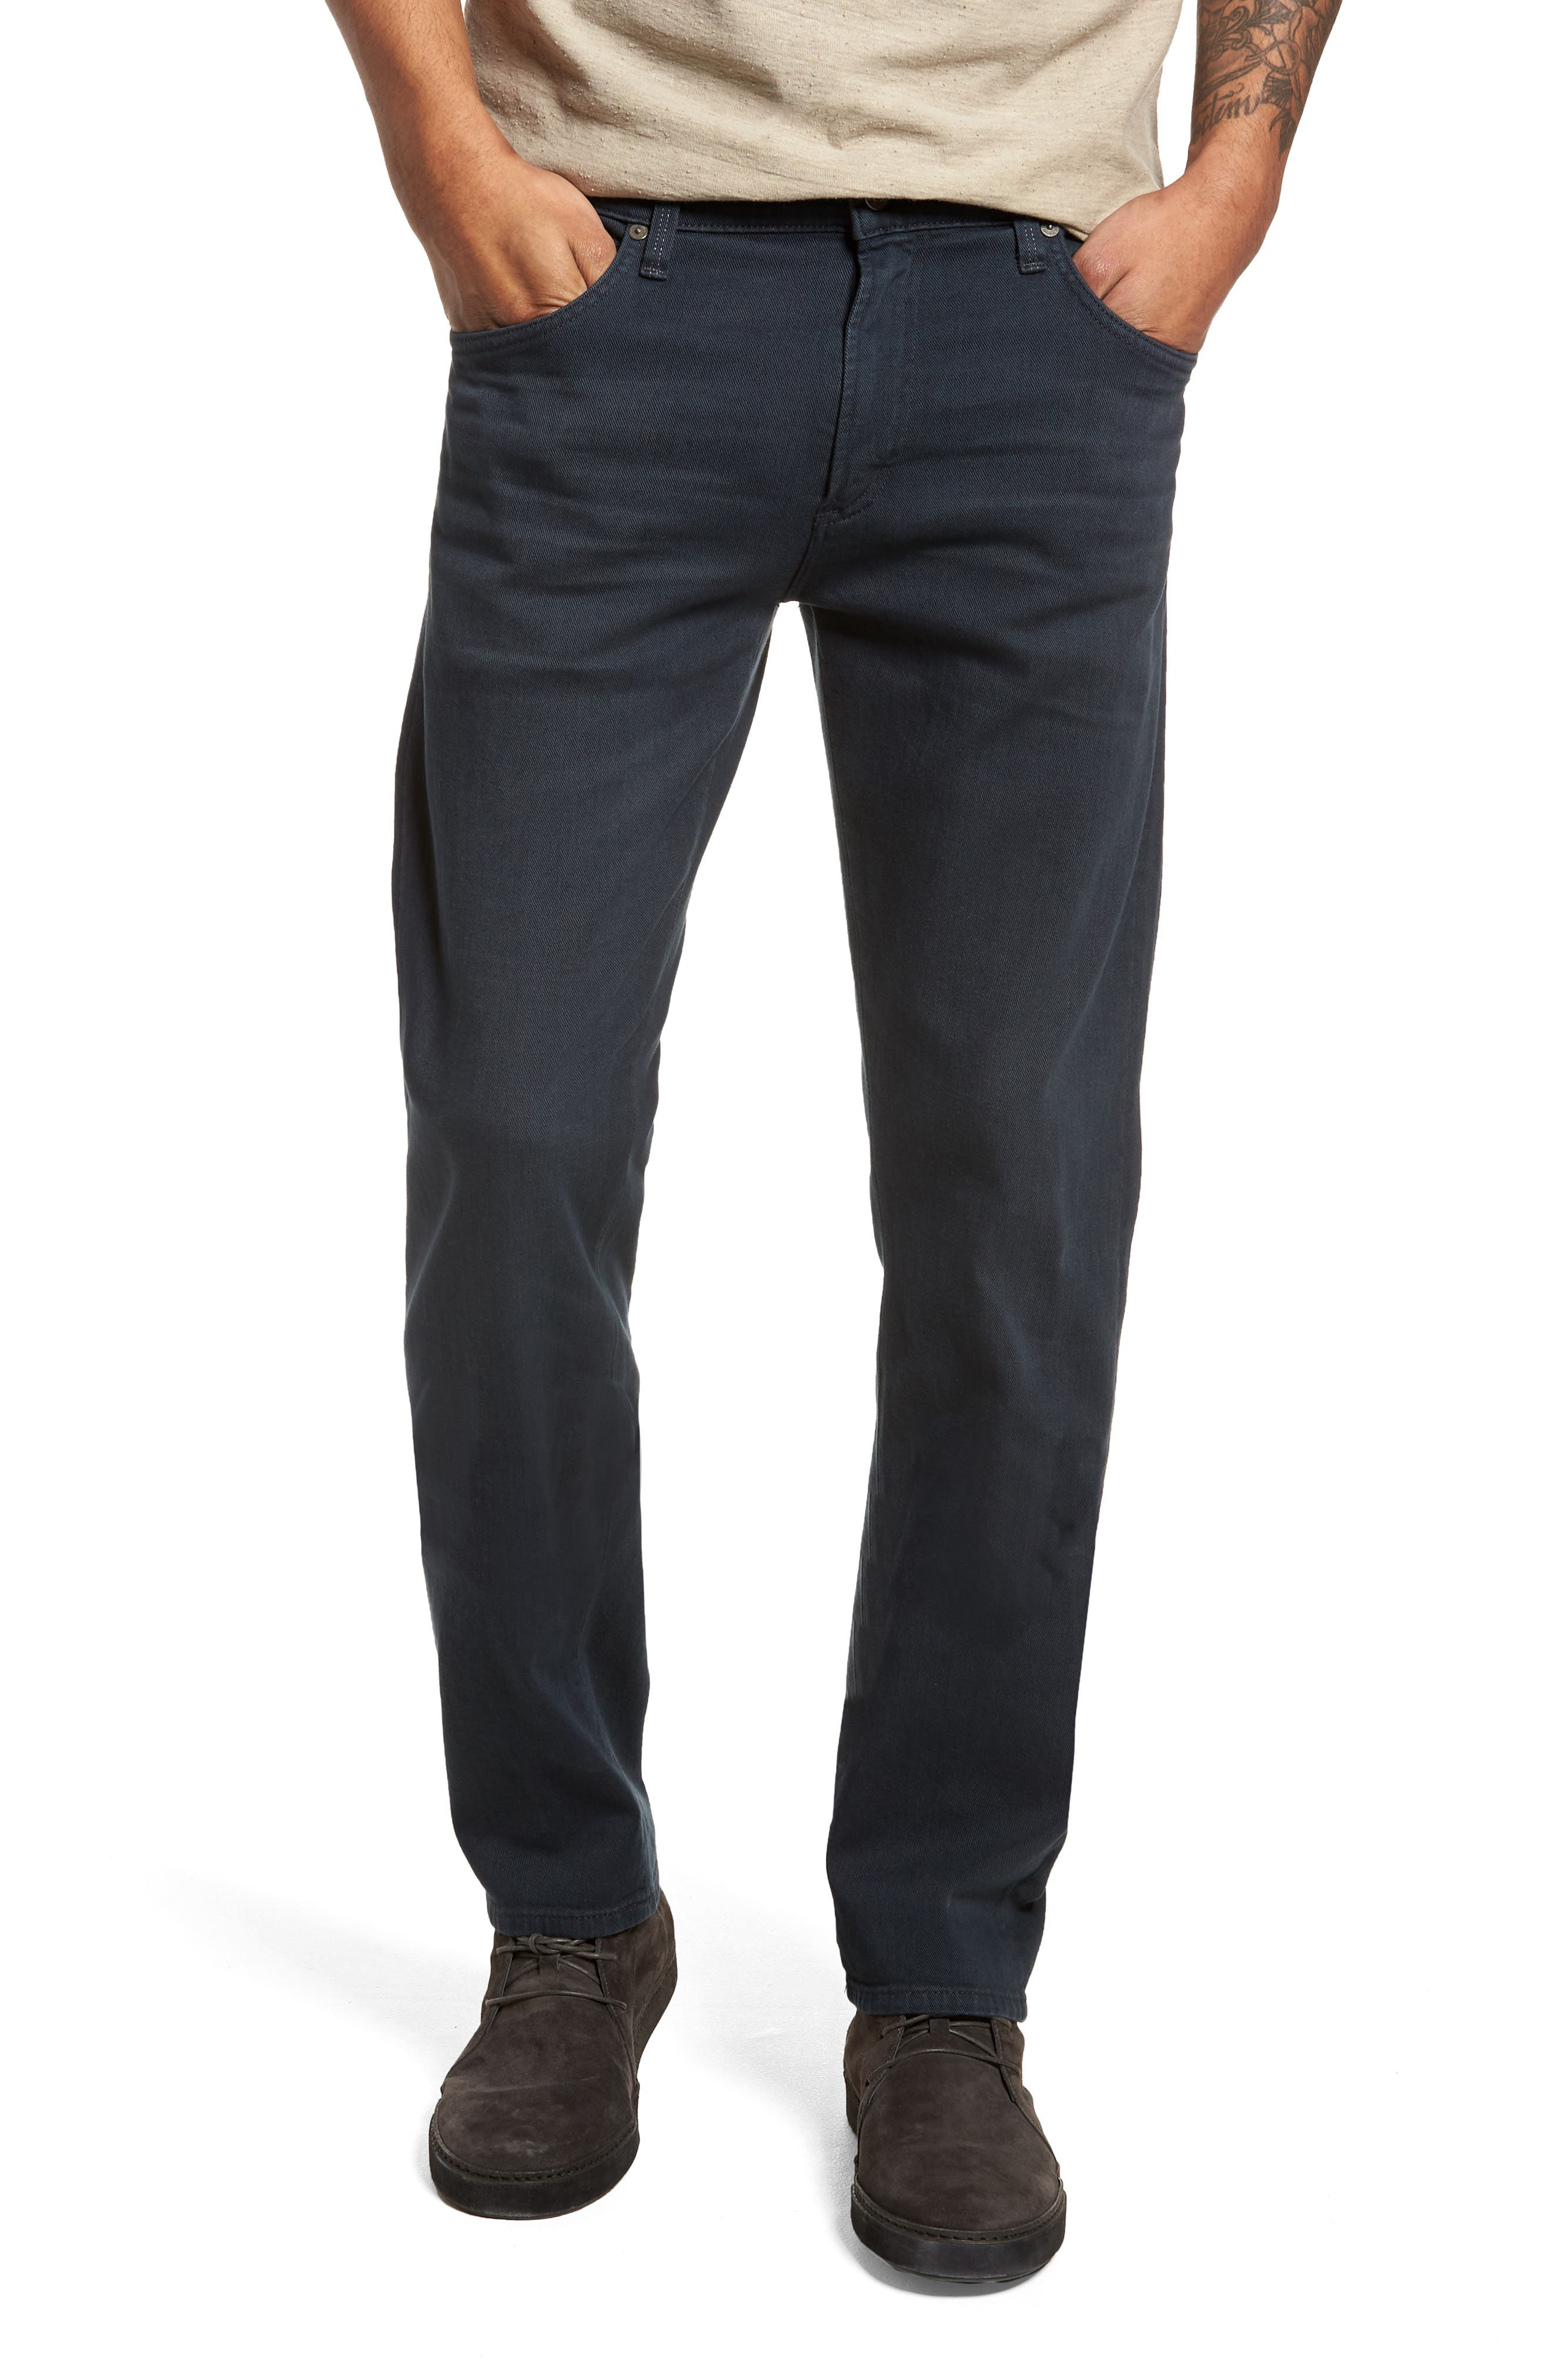 Core Slim Fit Jeans,                         Main,                         color, Mecca